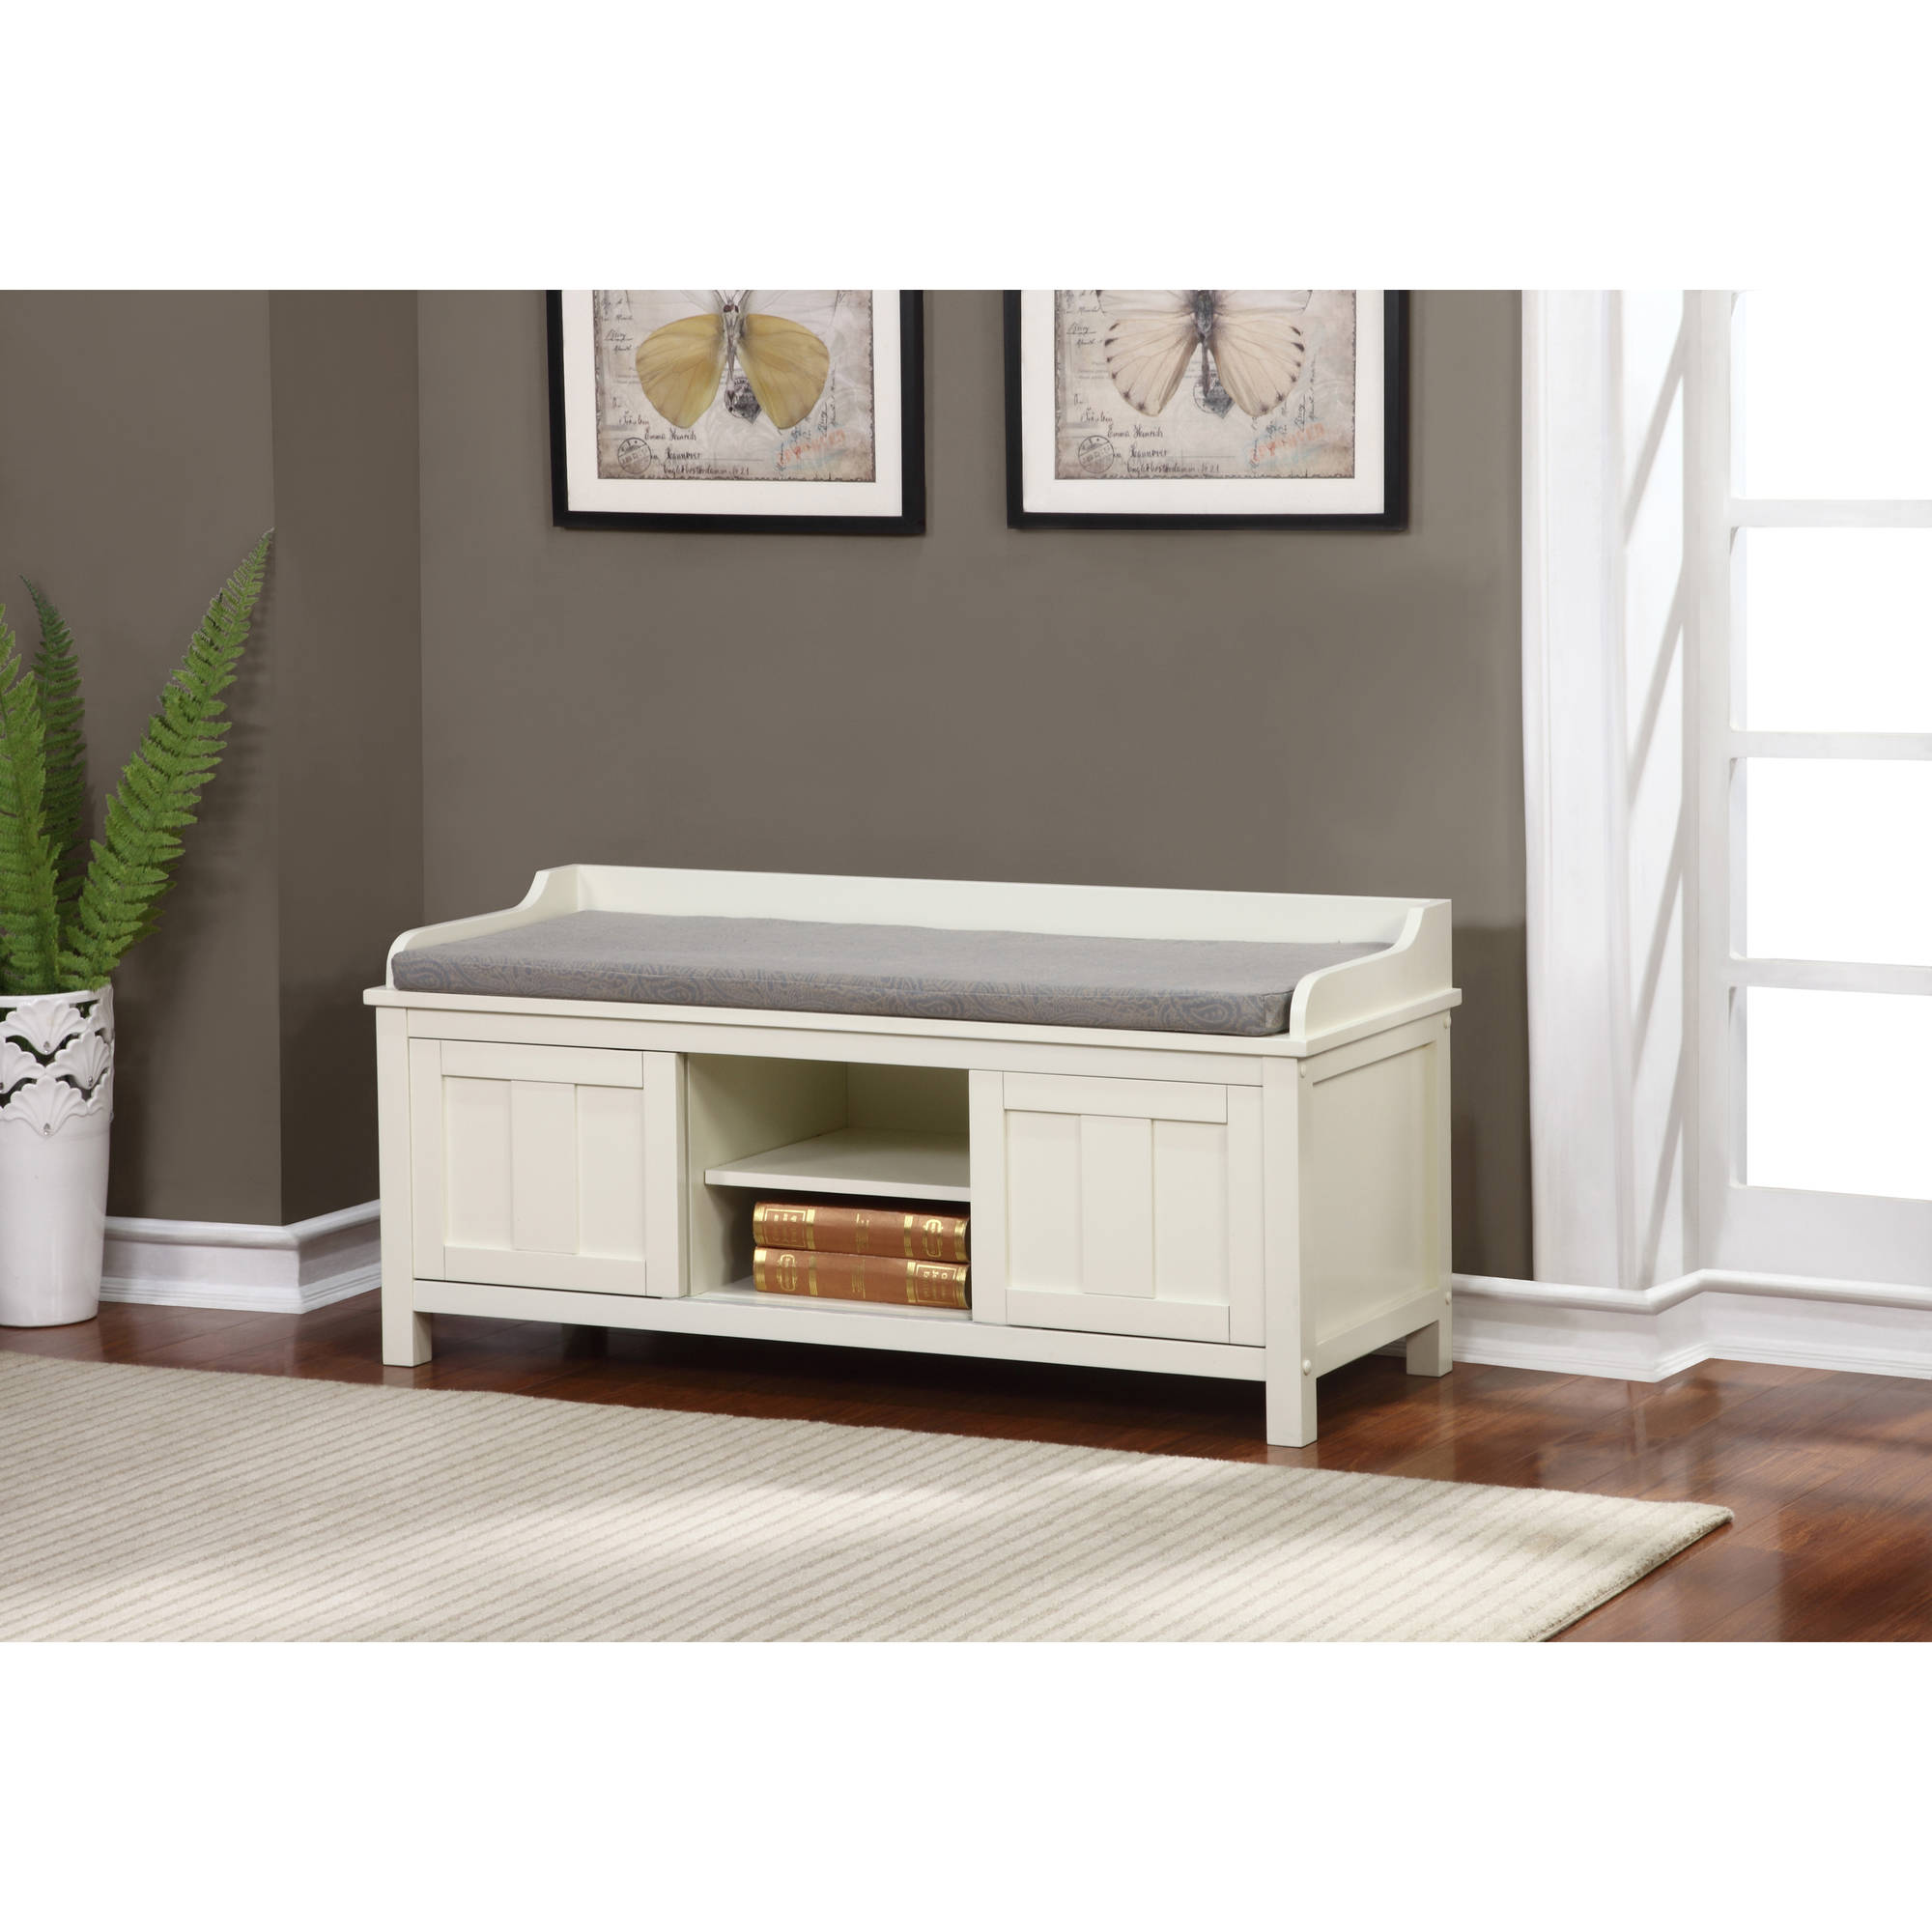 Wooden Storage Bench Lakeville White Storage Bench 18 75 Inches Seat Height